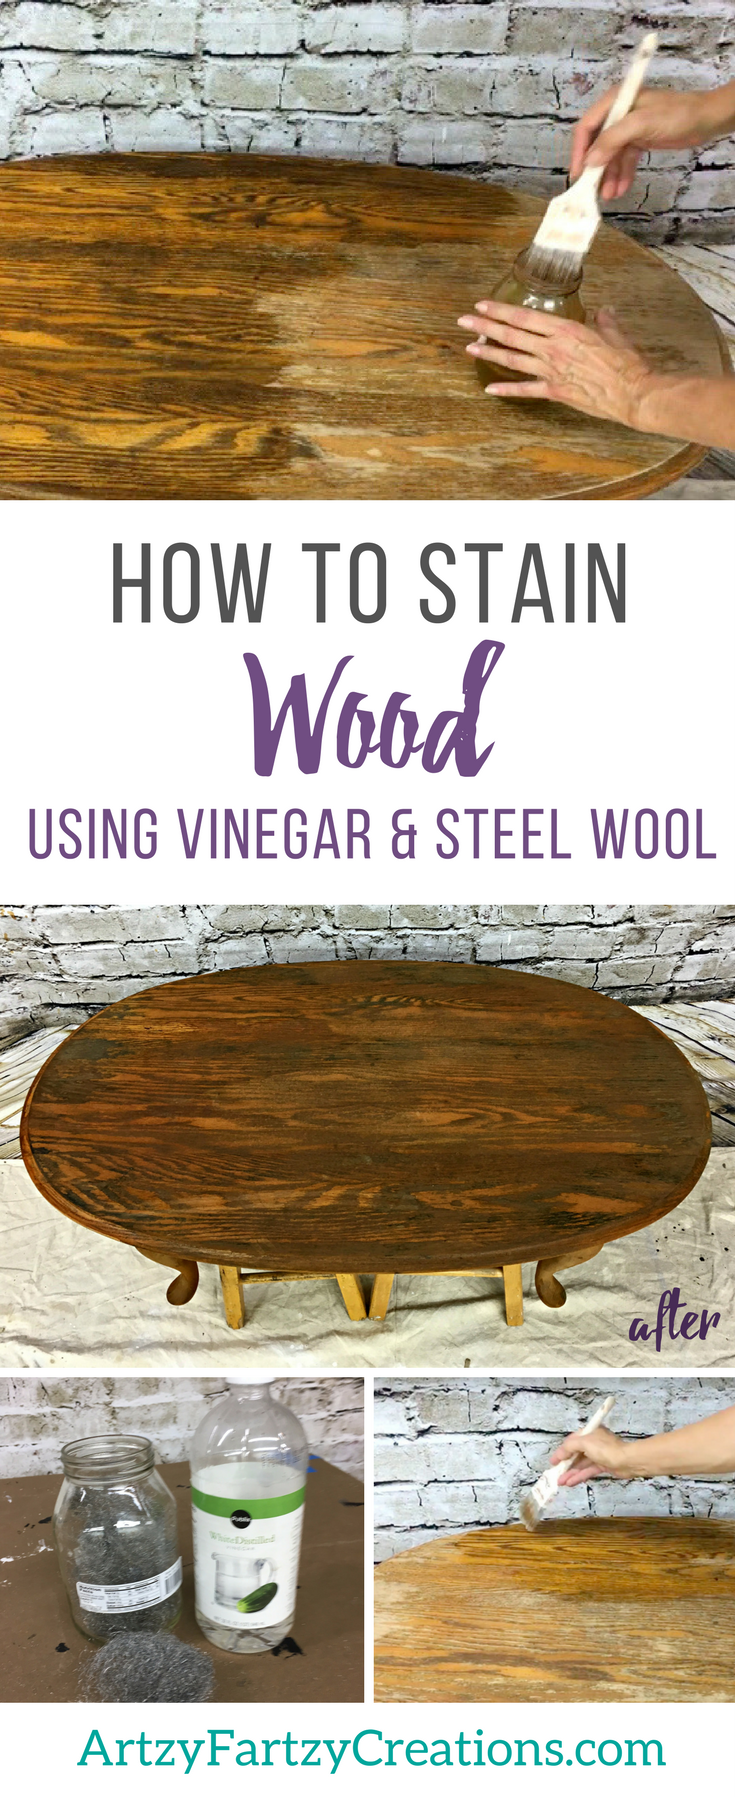 How to Stain Wood using Vinegar - Wood Stain Furniture by Cheryl Phan | Furniture Painting TIps | Furniture Makeover